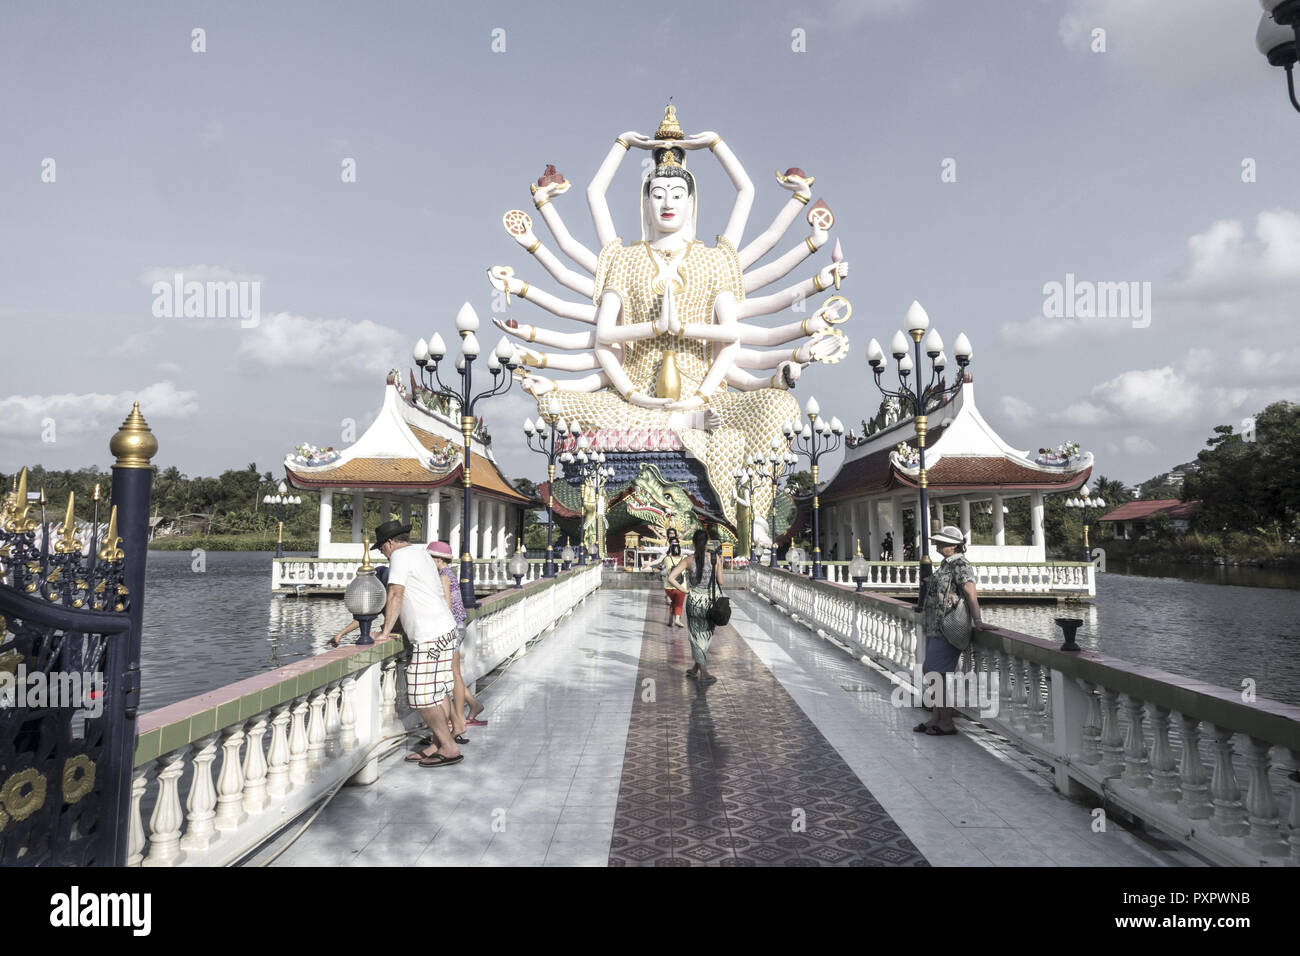 Wat Plai Laem temple Koh Samui, Thailand, Asia Stock Photo